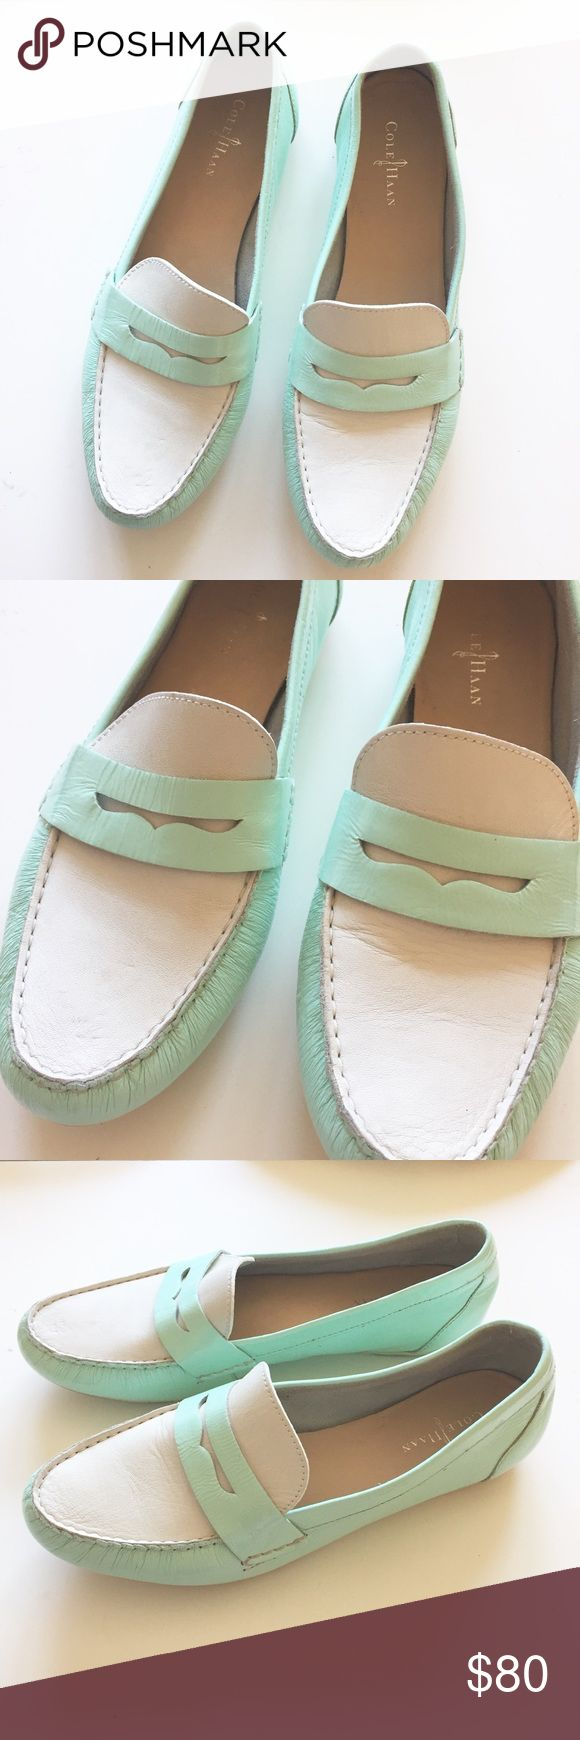 Cole Haan loafers, size 9 Cole Haan mint green and white loafers, size 9. Small signs of wear but in excellent overall condition! Cole Haan Shoes Flats & Loafers